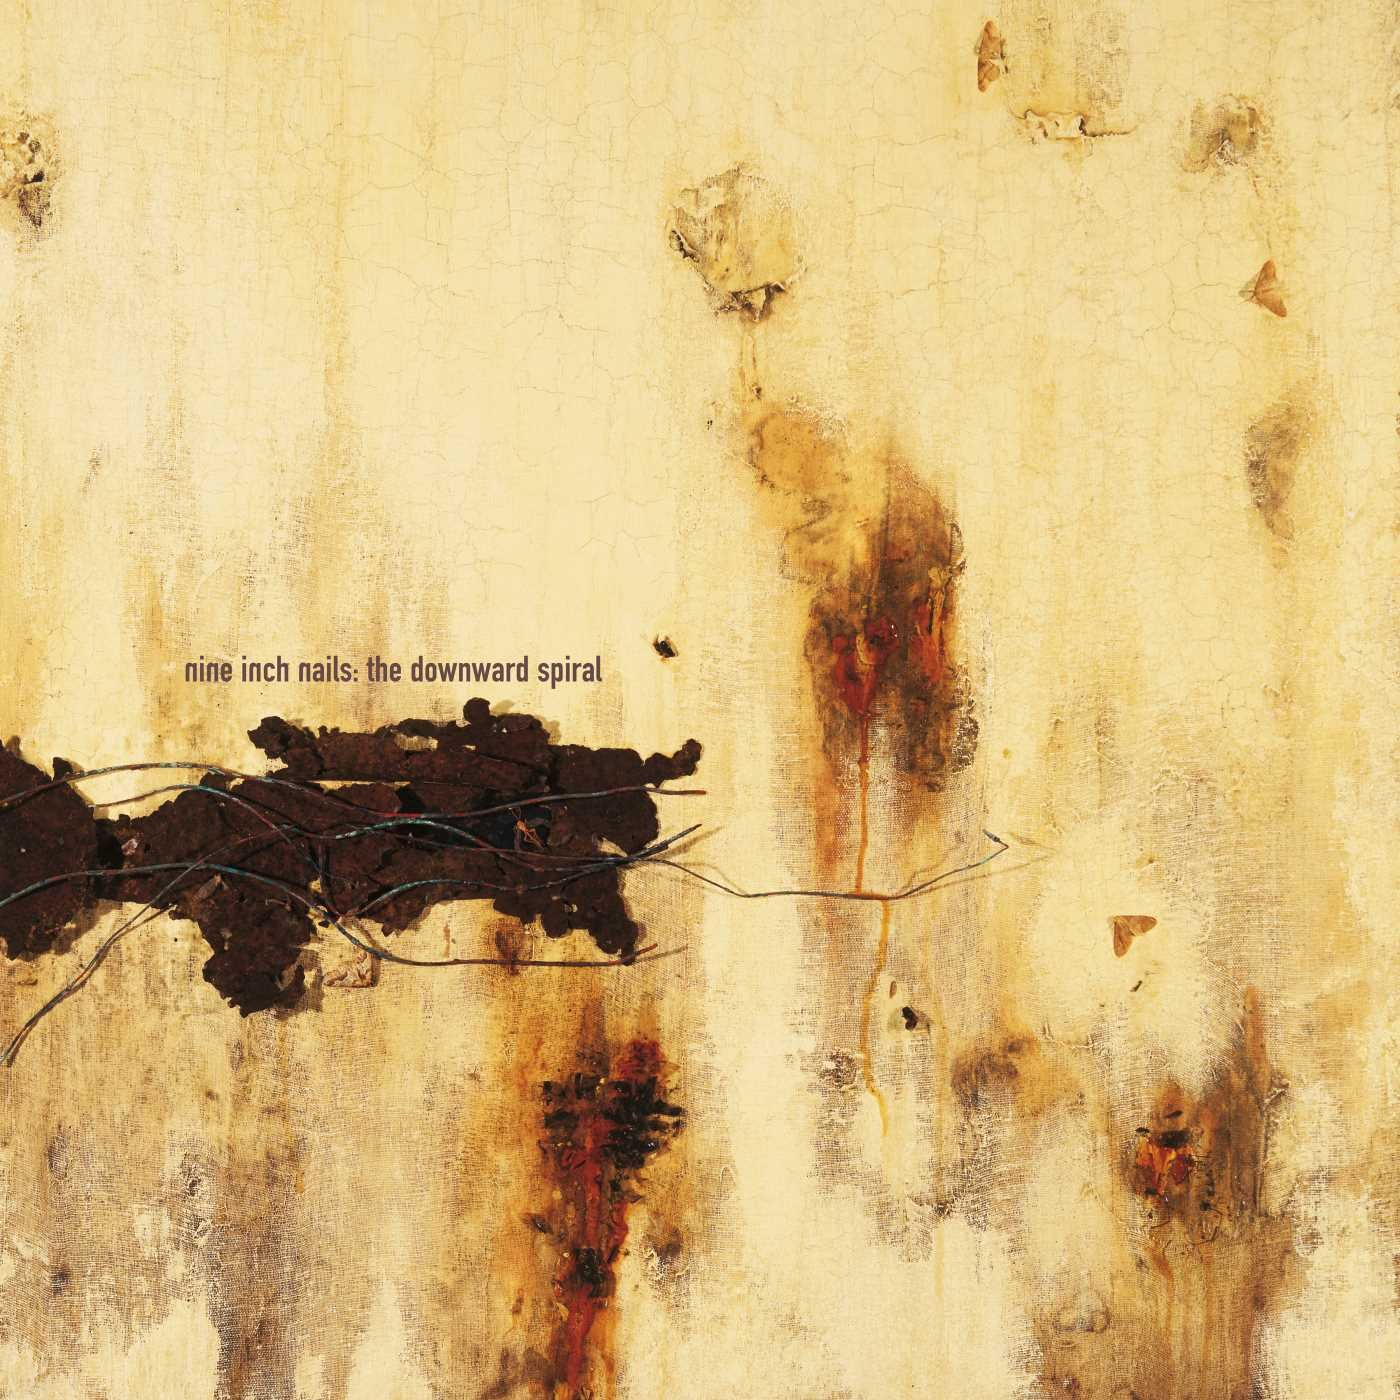 Nine Inch Nails - The Downward Spiral [2 LP] - Amazon.com Music